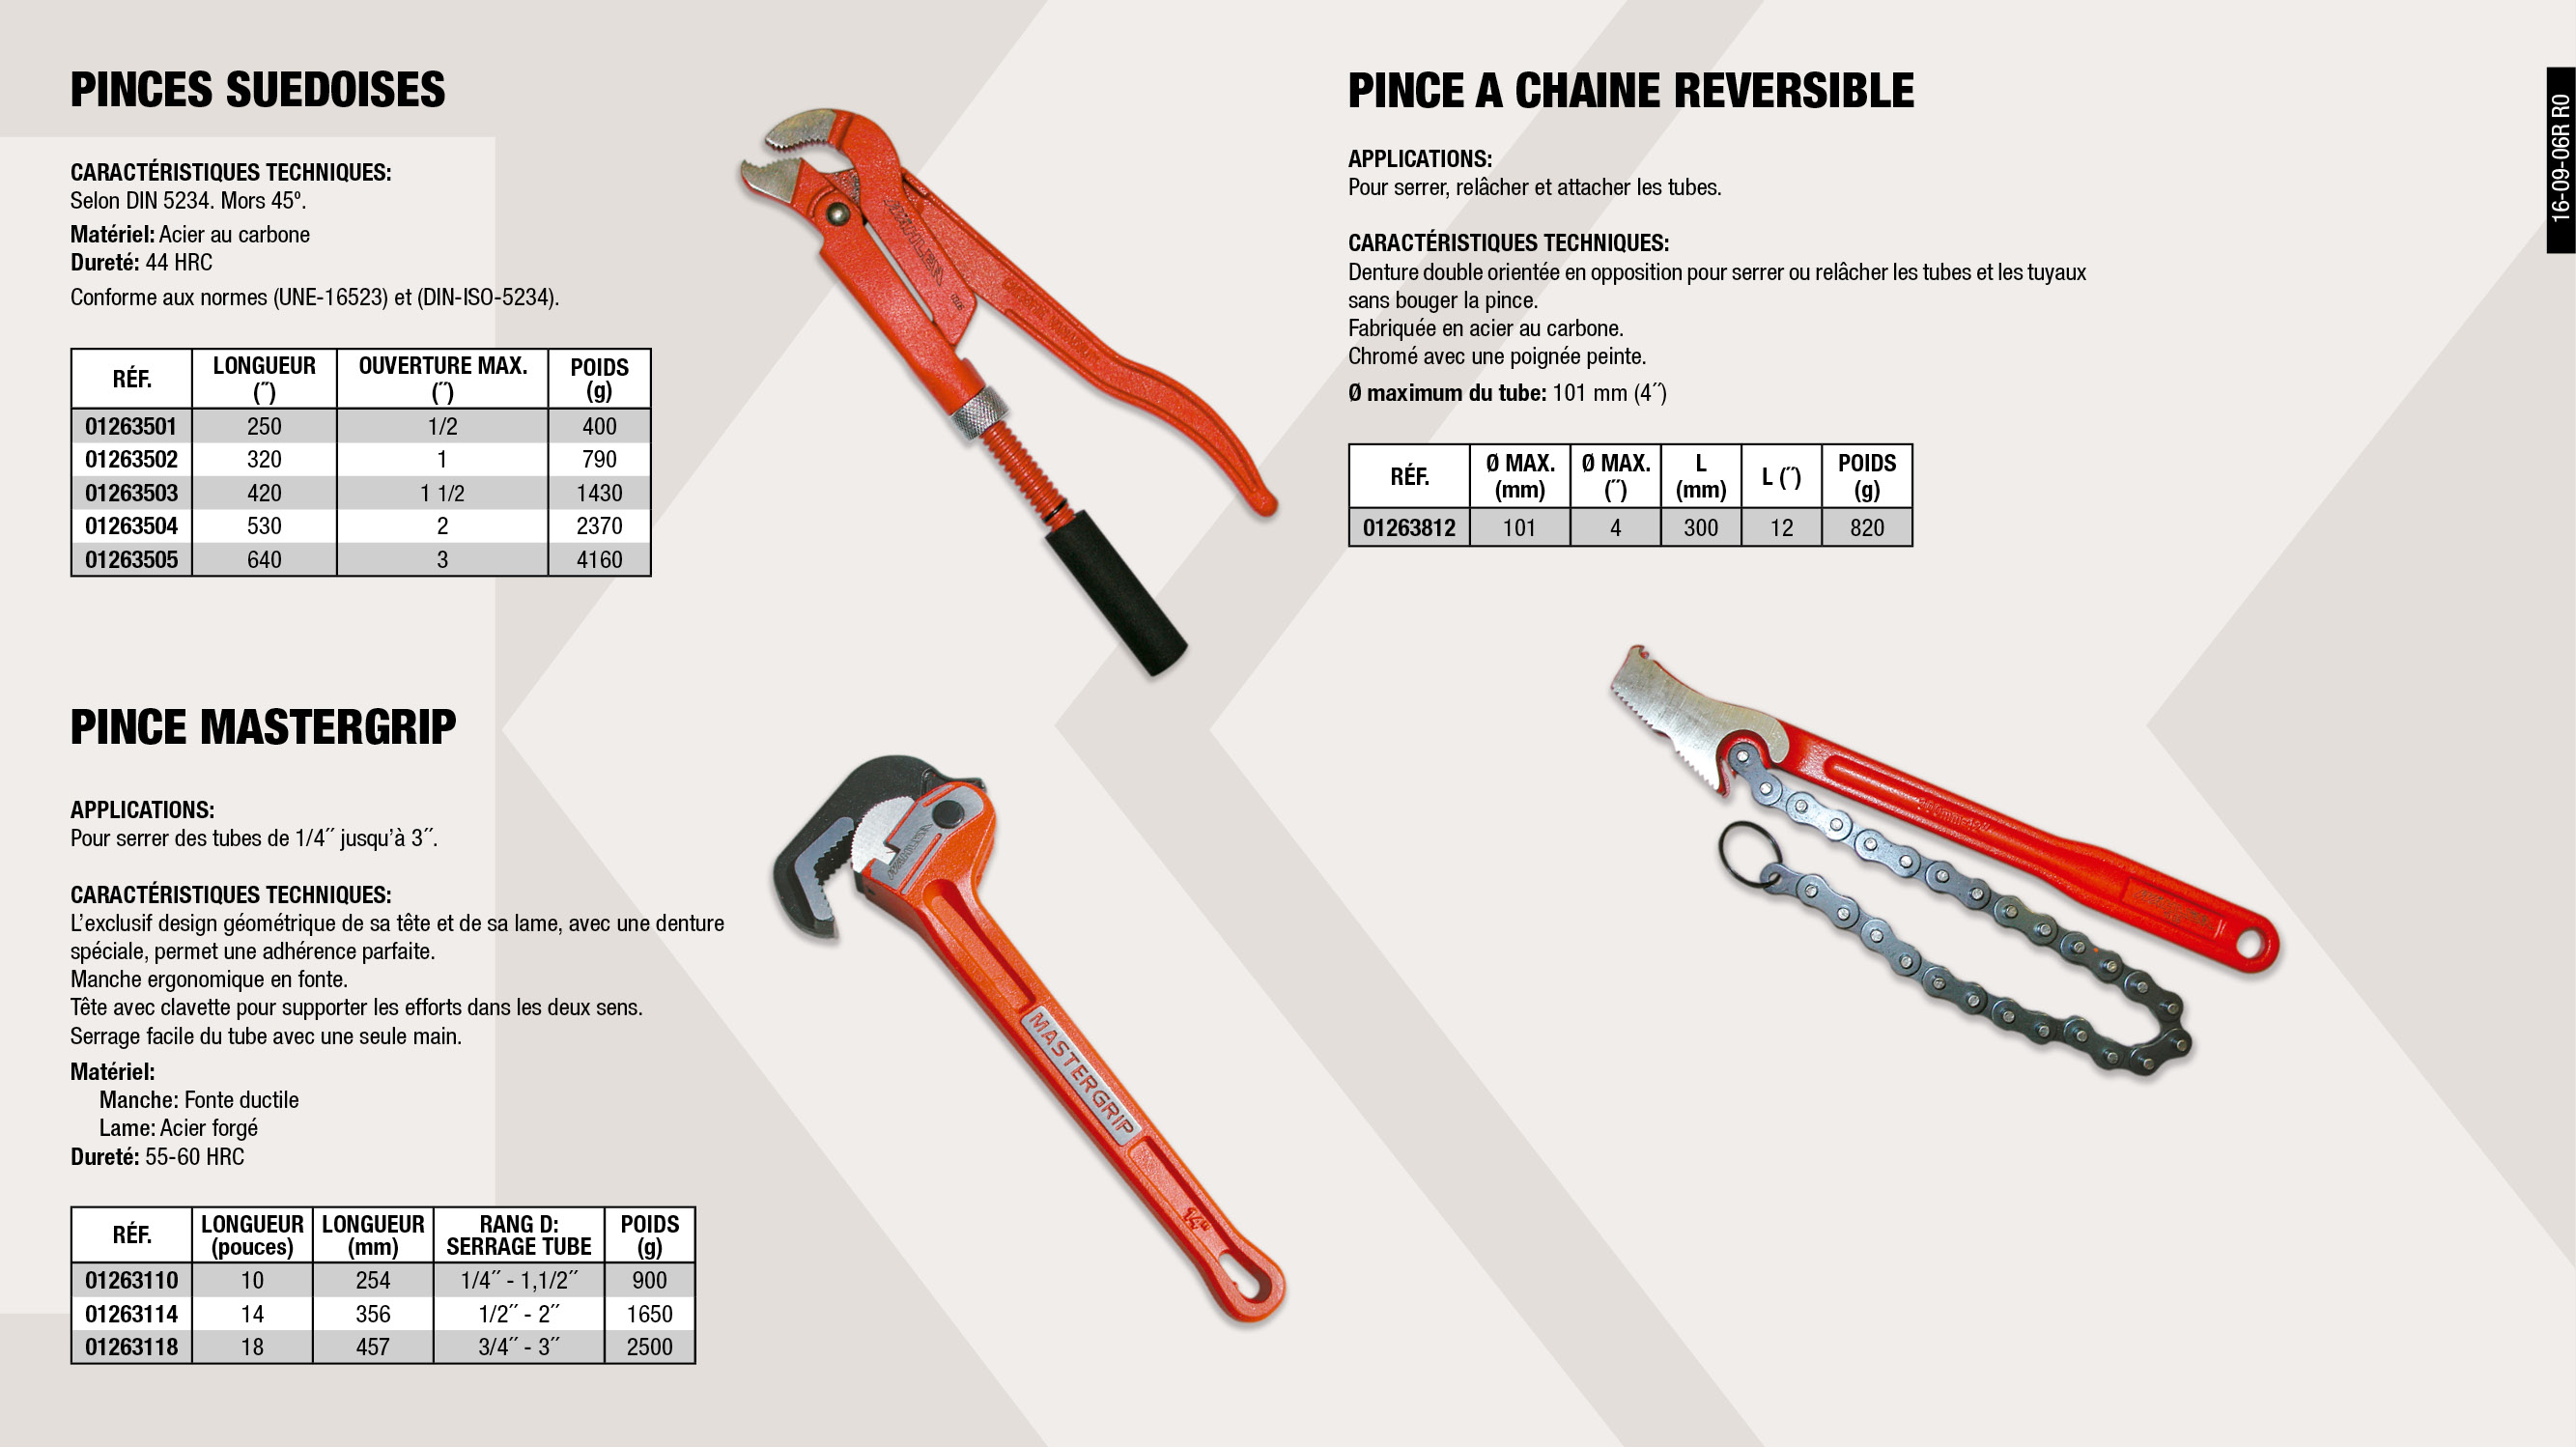 PINCE SUEDOISE S-45º 1'                                     ,  									PINCE A CHAINE REVERSIBLE                                   ,  									PINCE SUEDOISE S-45º 2'                                     ,  									PINCE SUEDOISE S-45º  1.1/2'                                ,  									PINCE MASTERGRIP 14'                                        ,  									PINCE SUEDOISE S-45º 3'                                     ,  									PINCE SUEDOISE S-45º 1/2'                                   ,